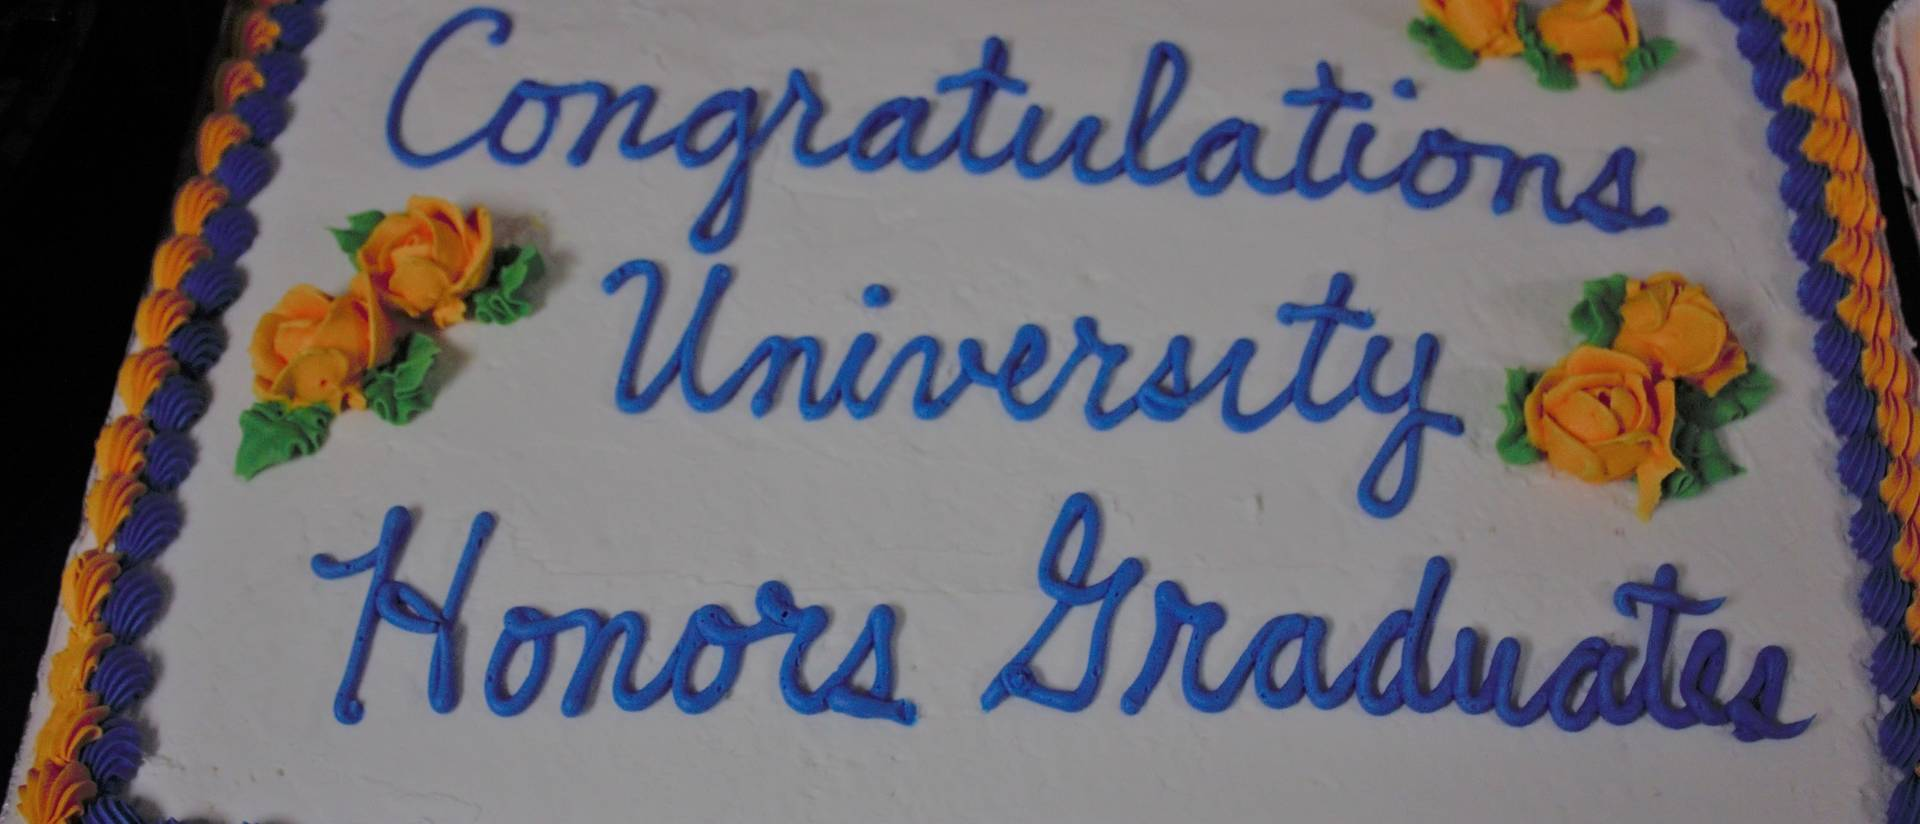 University Honors grad ceremony decorated cake